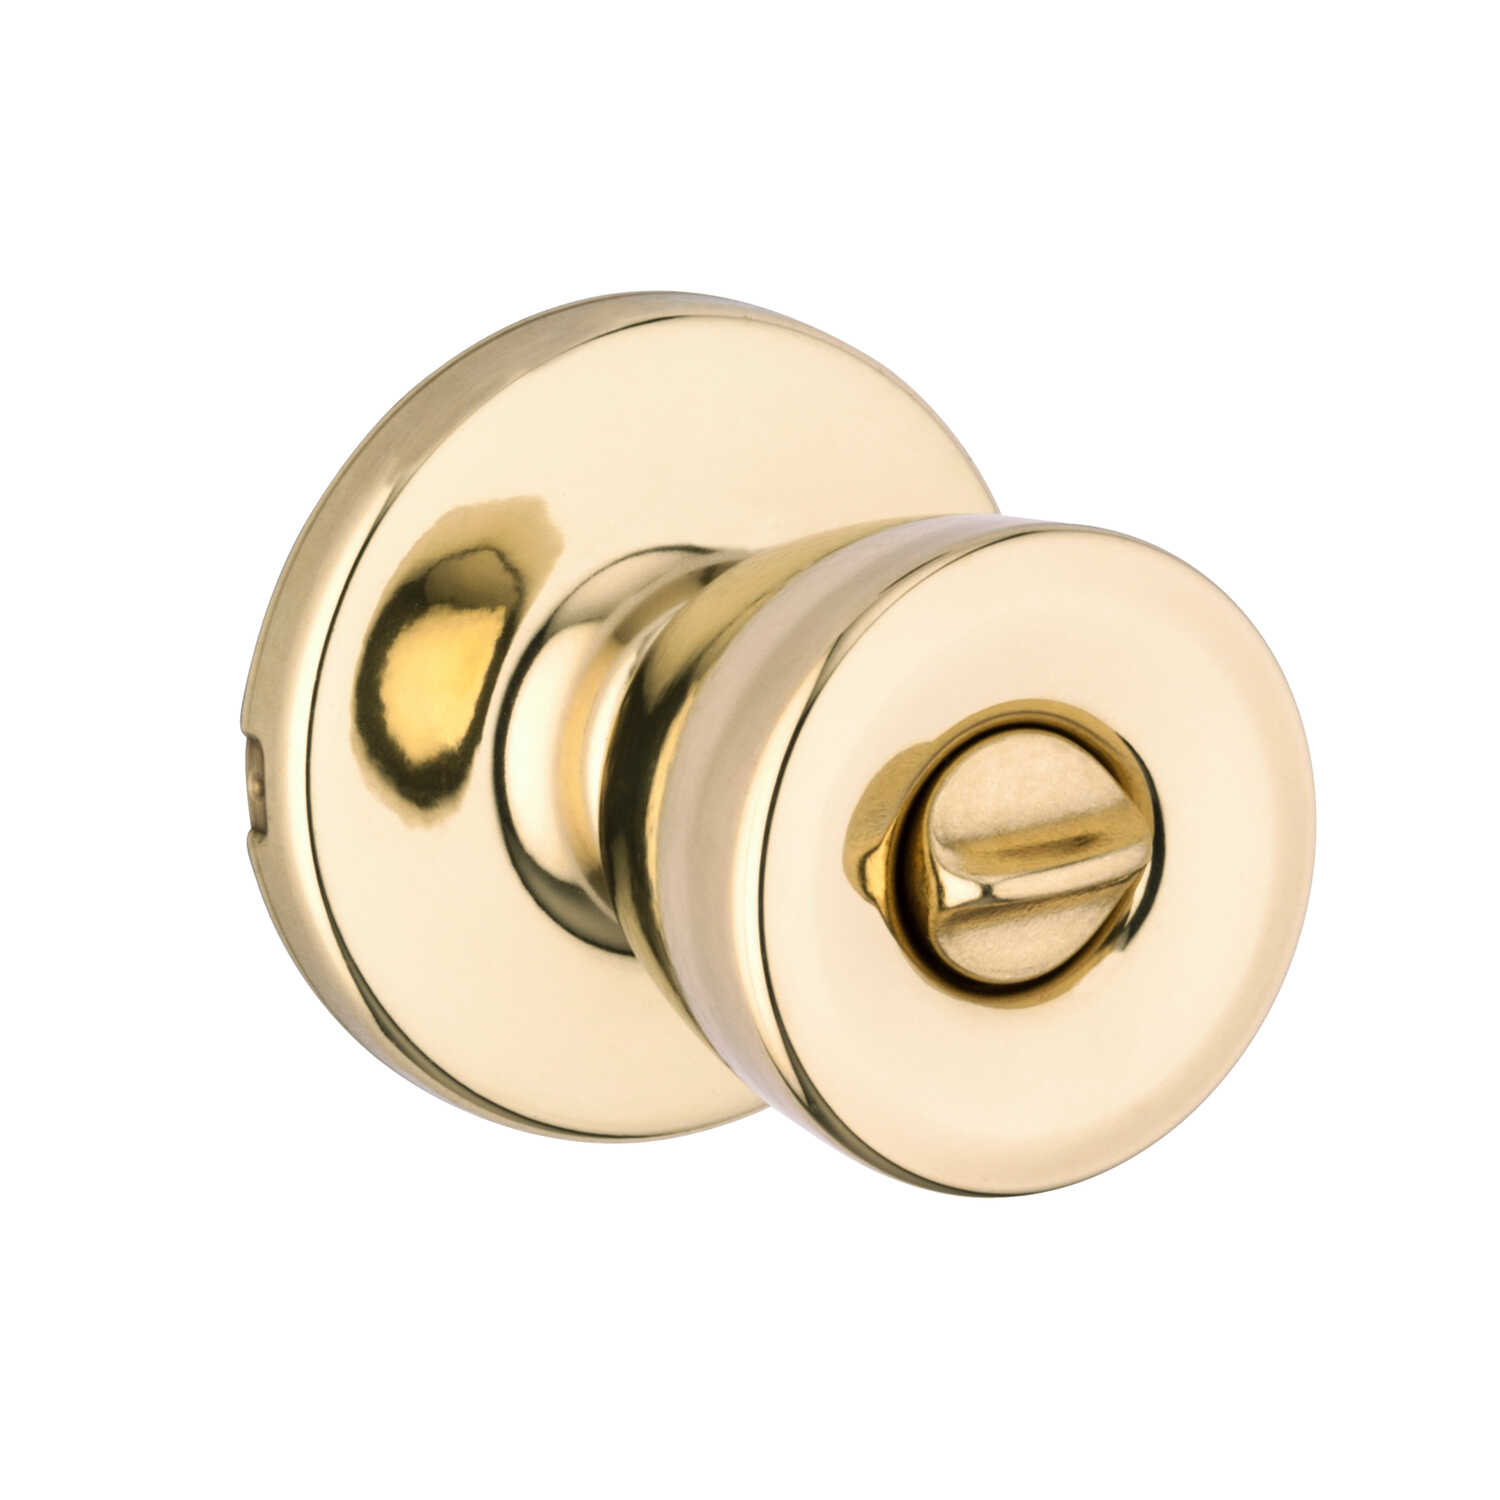 Weiser  Beverly  Polished Brass  Privacy Lockset  ANSI/BHMA Grade 3  1-3/4 in.